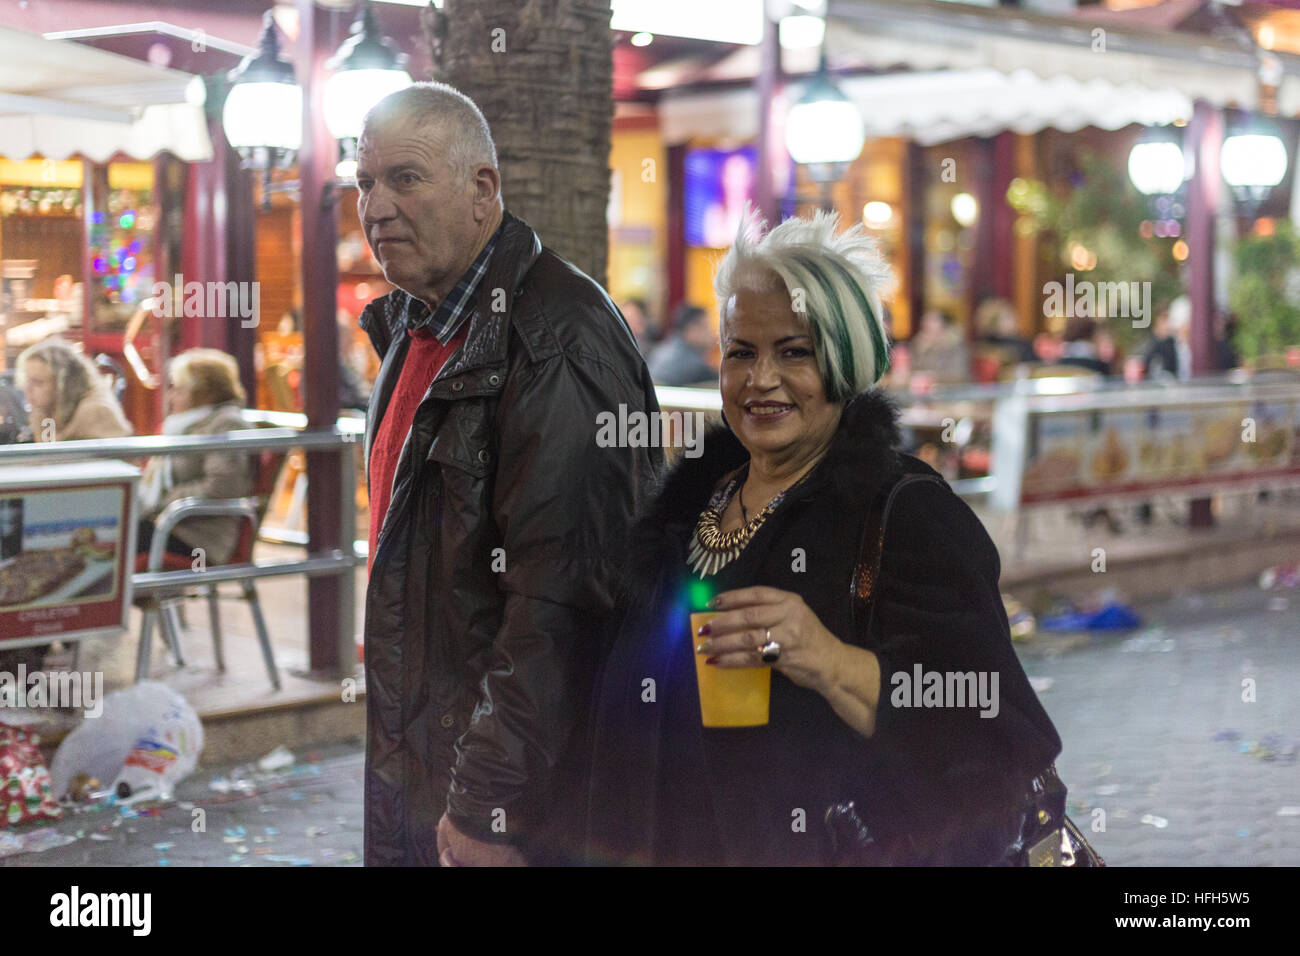 Benidorm, Spain. 31st December, 2016. Tourists and locals enjoy the music and dancing on the promenade and beach.Middle - Stock Photo